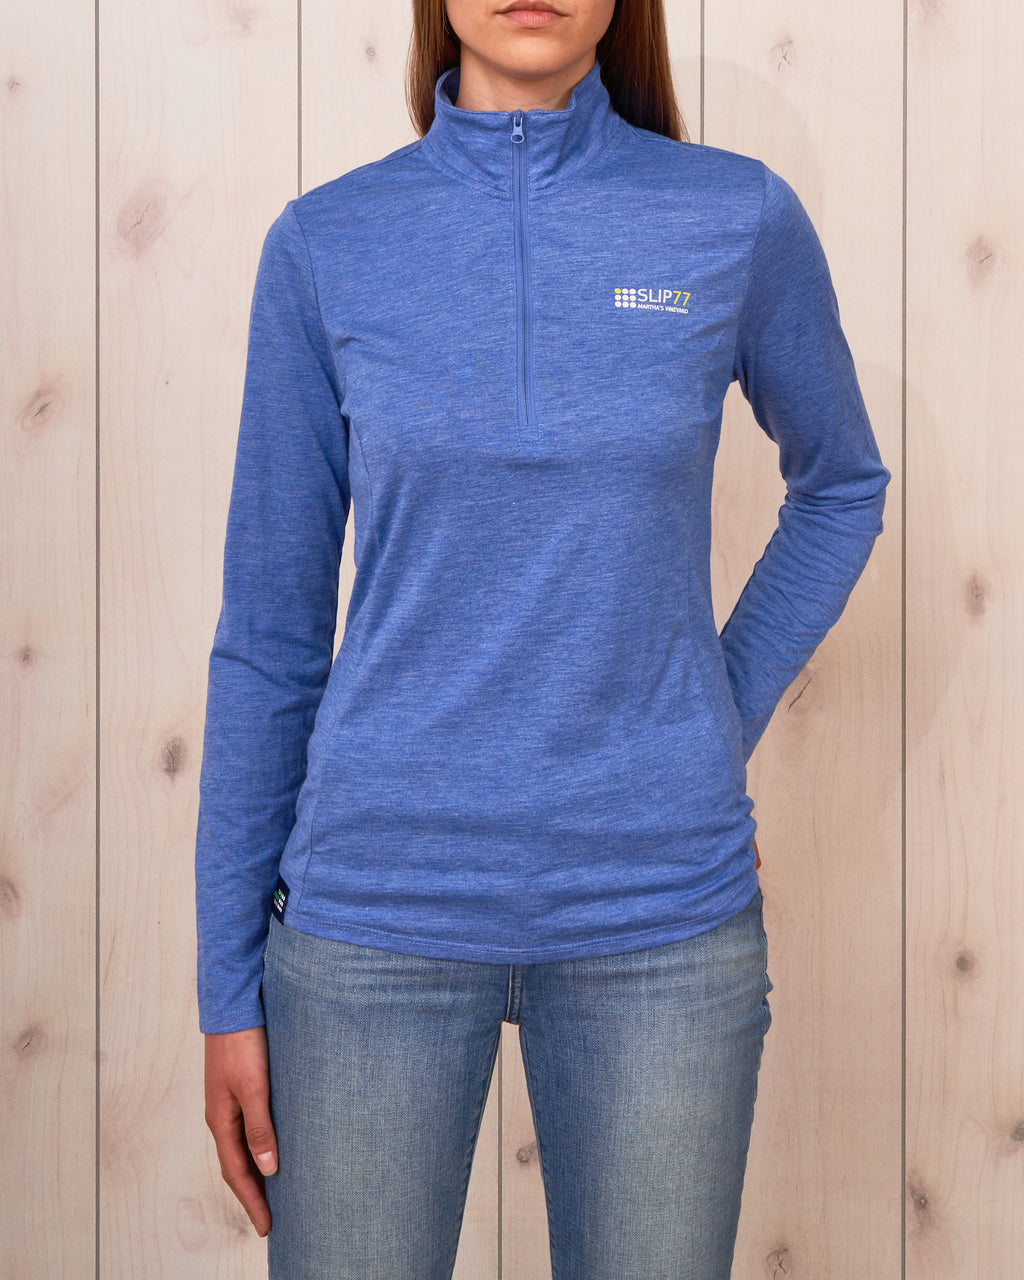 Women's Island Hopper Active 1/4 Zip Pullover